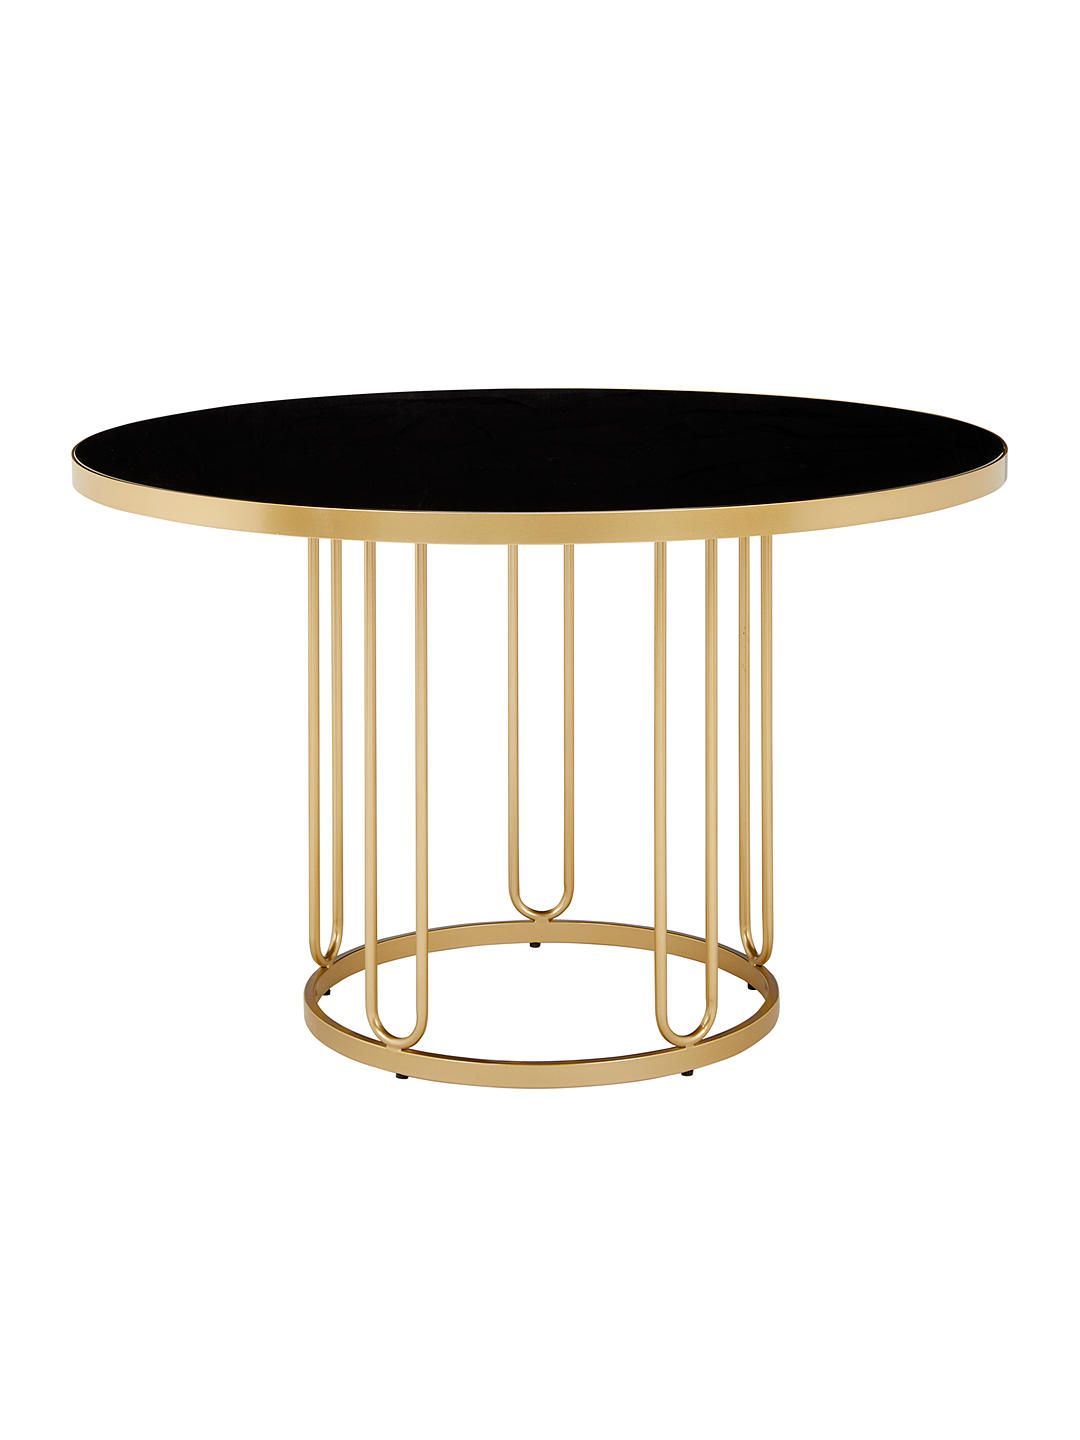 BuyJohn Lewis & Partners Farrugia 4 Seater Glass Top Dining Table, Black/Brass Online at johnlewis.com